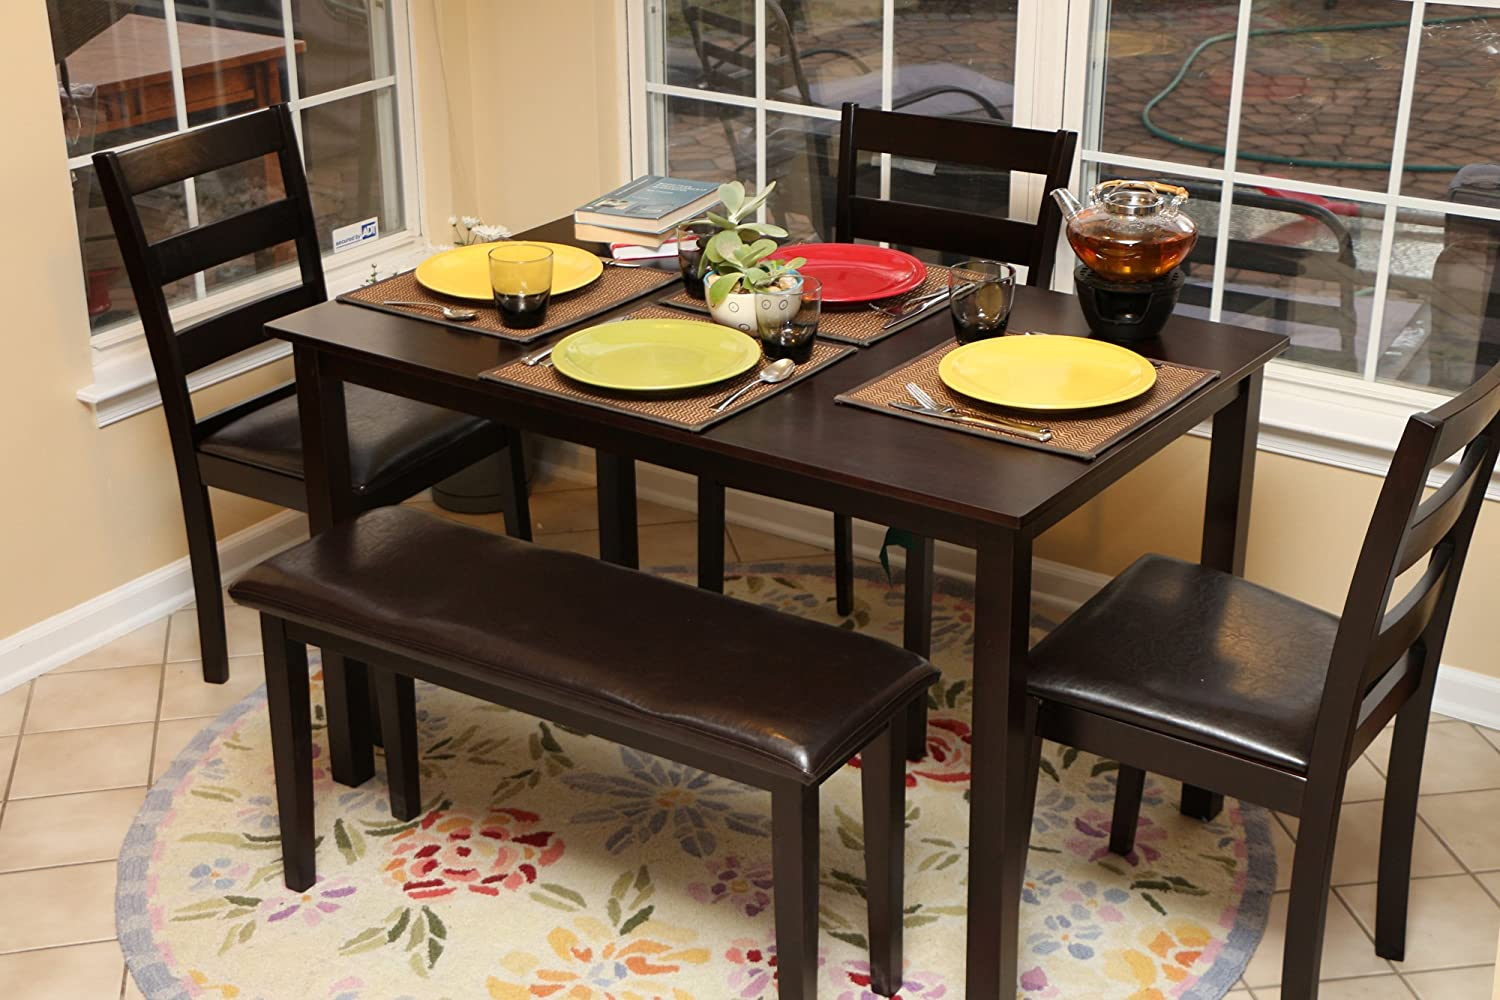 Amazon.com - LIFE Home Home Life 5pc Dining Dinette Table Chairs u0026 Bench Set Espresso Finish 150236 - Table u0026 Chair Sets & Amazon.com - LIFE Home Home Life 5pc Dining Dinette Table Chairs ...